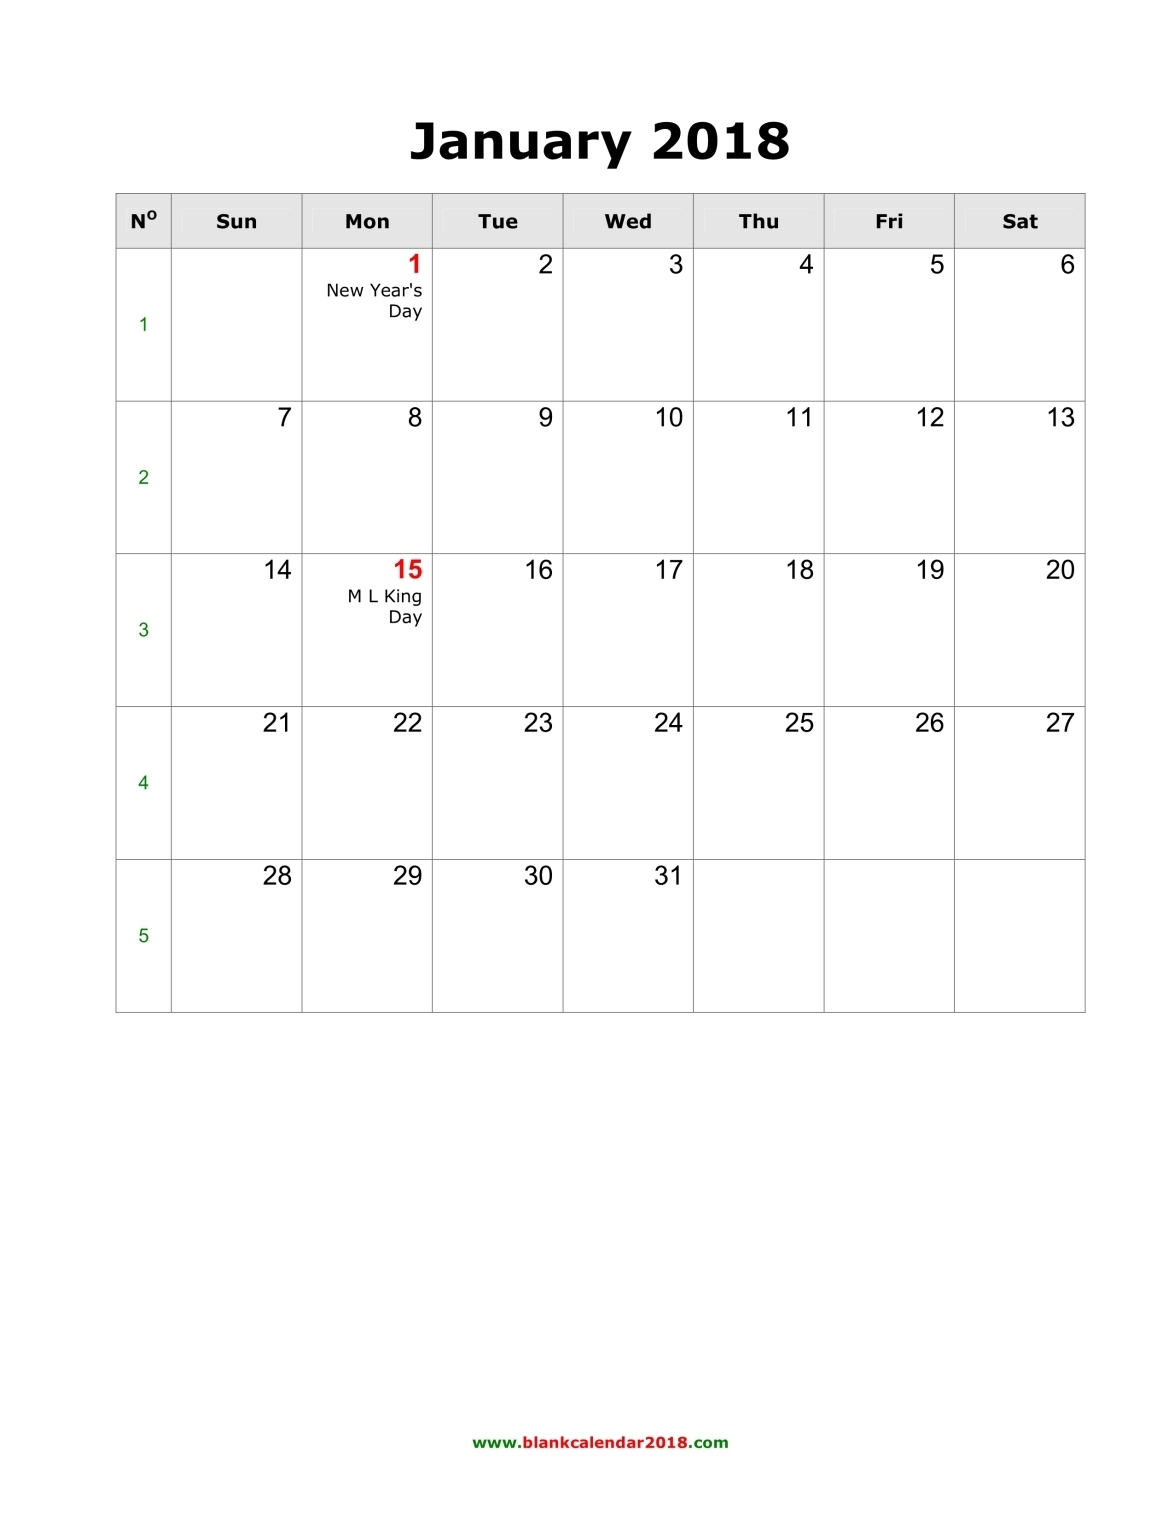 Calendar Monthly With Holidays : Blank monthly holidays calendar portrait